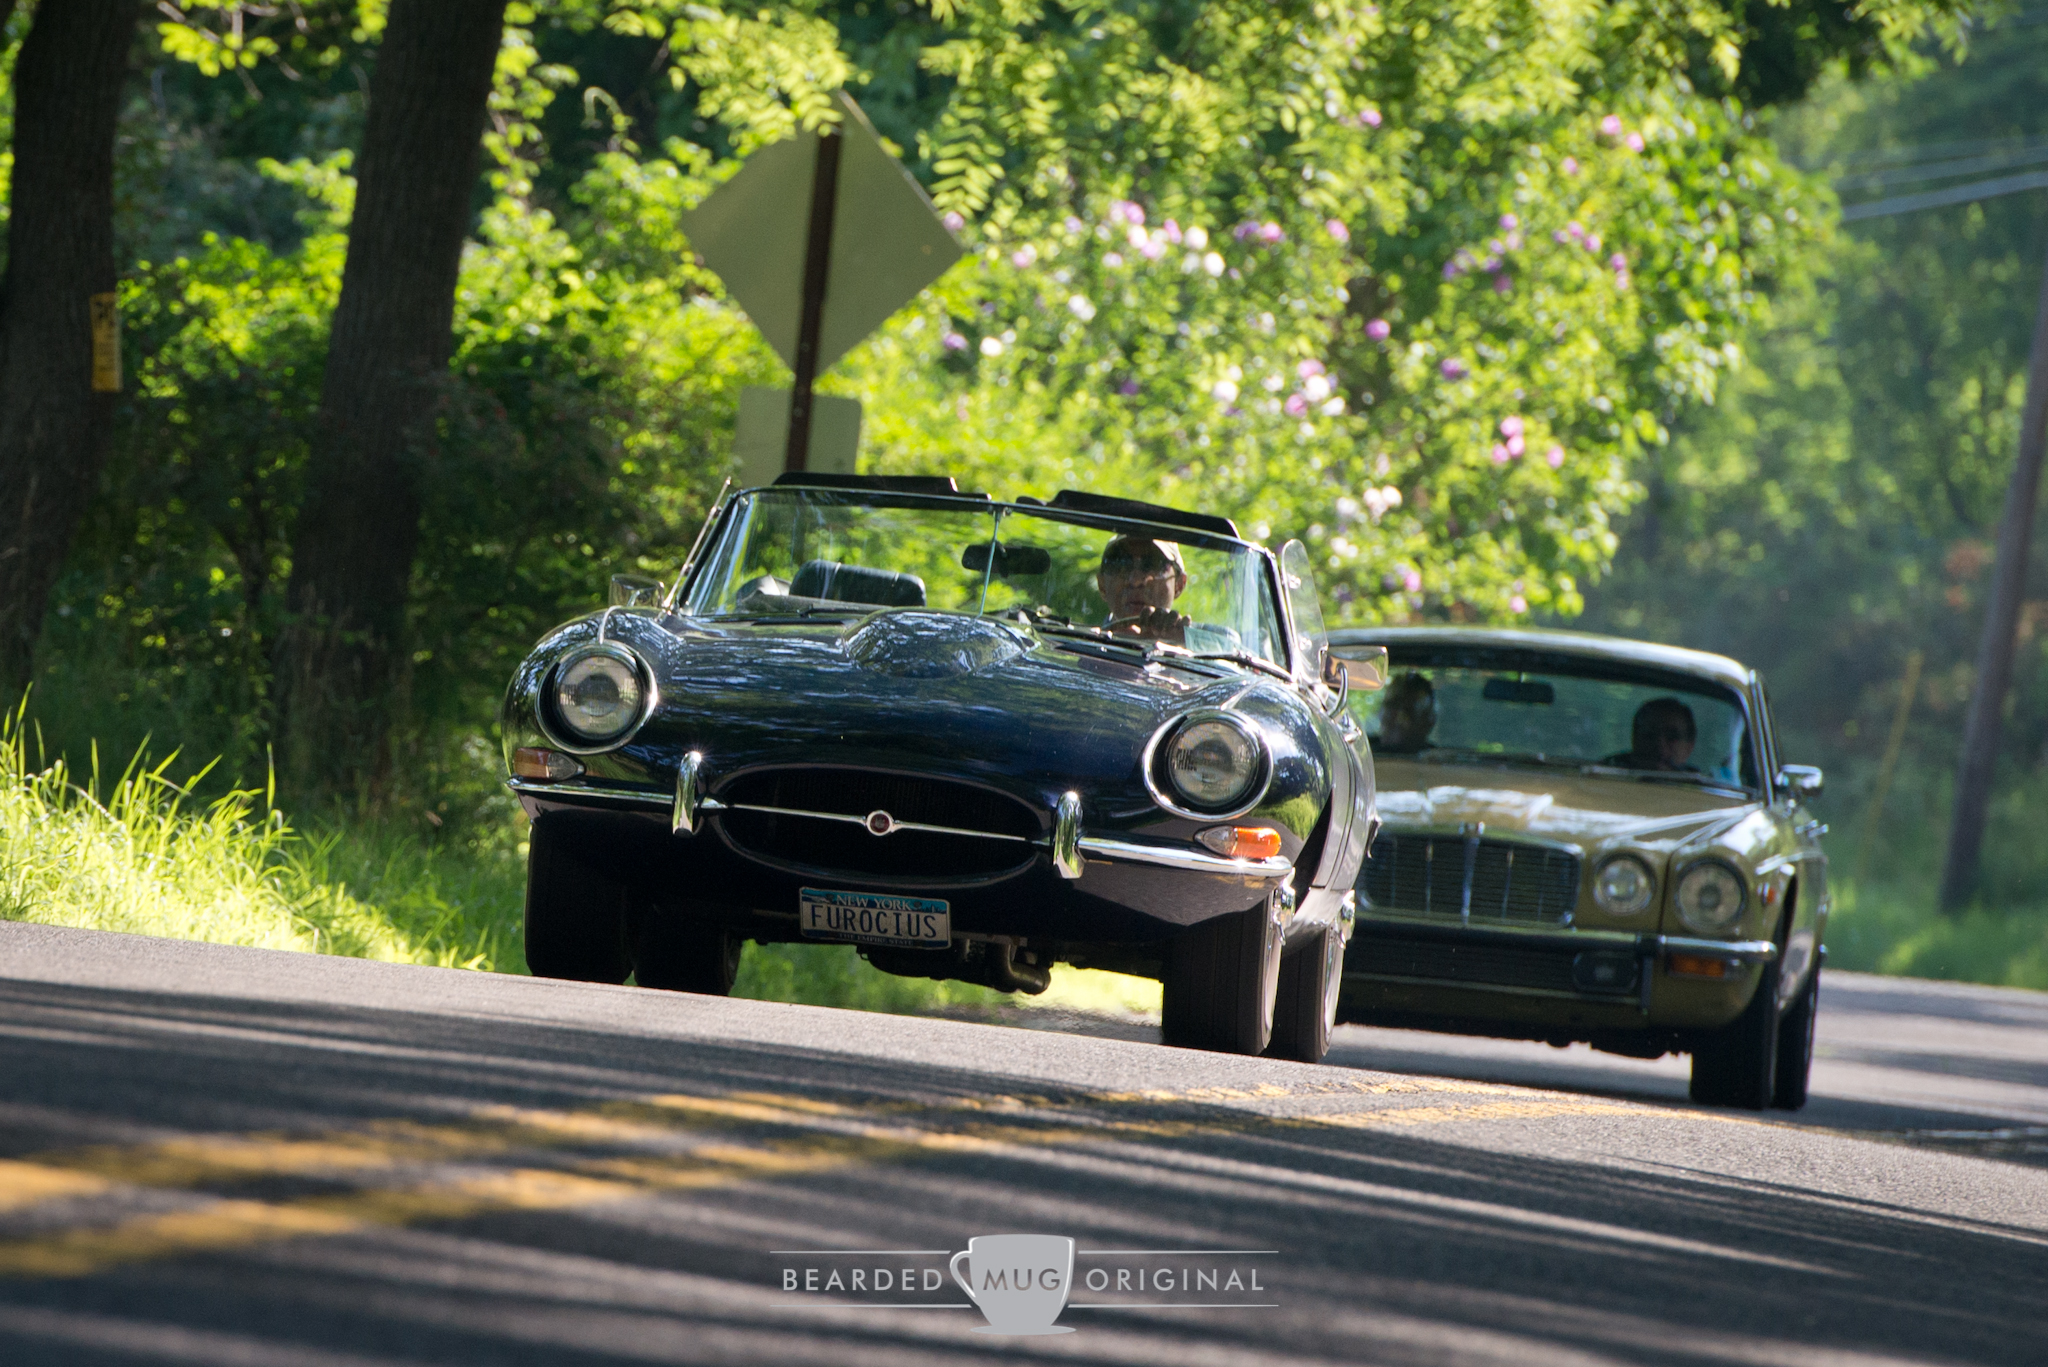 The perfect weather for the Jag is a sunny day to allow George to soak up that vitamin E, I mean D.